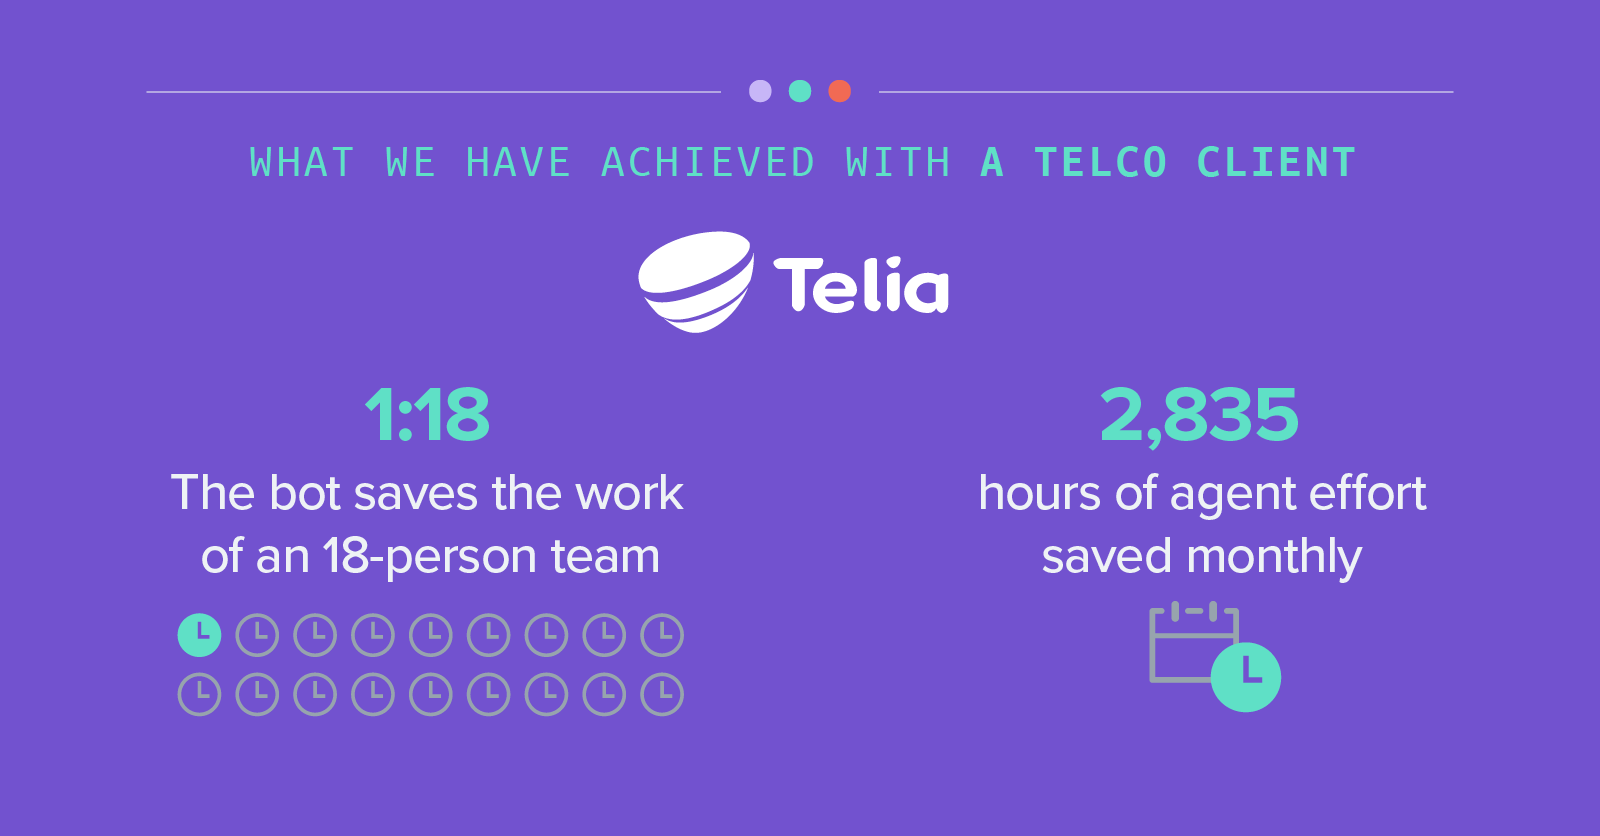 What we have achieved with a telco client - 1:18 The bot saves the work of an 18-person team - 2,835 hours of agent effort saved monthly